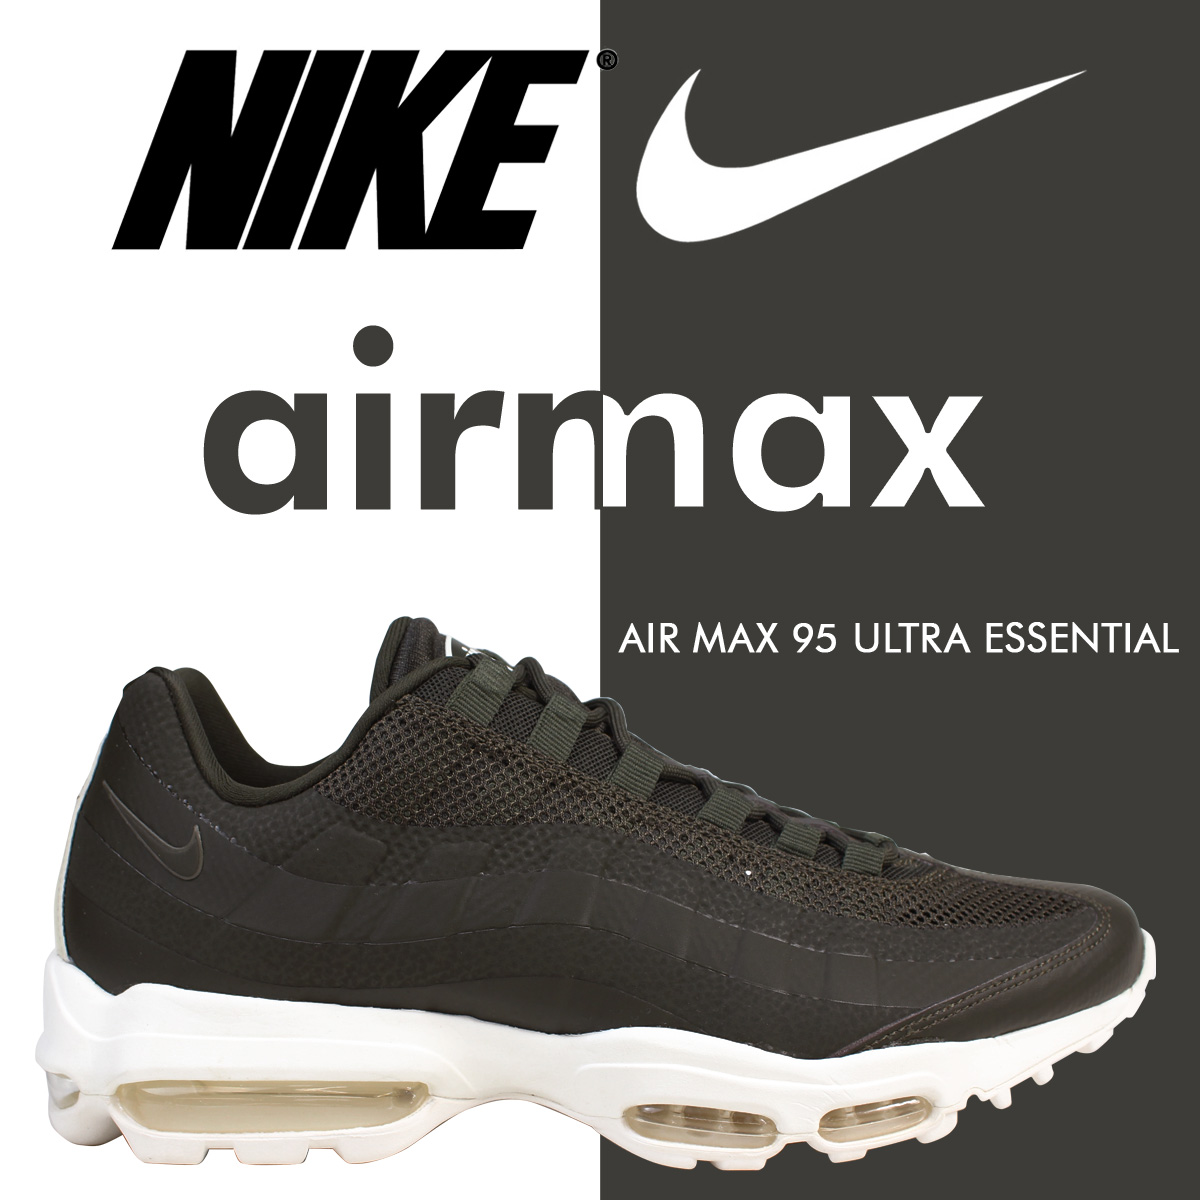 Mens Shoes Nike Sportswear Air Max 95 Ultra Essential